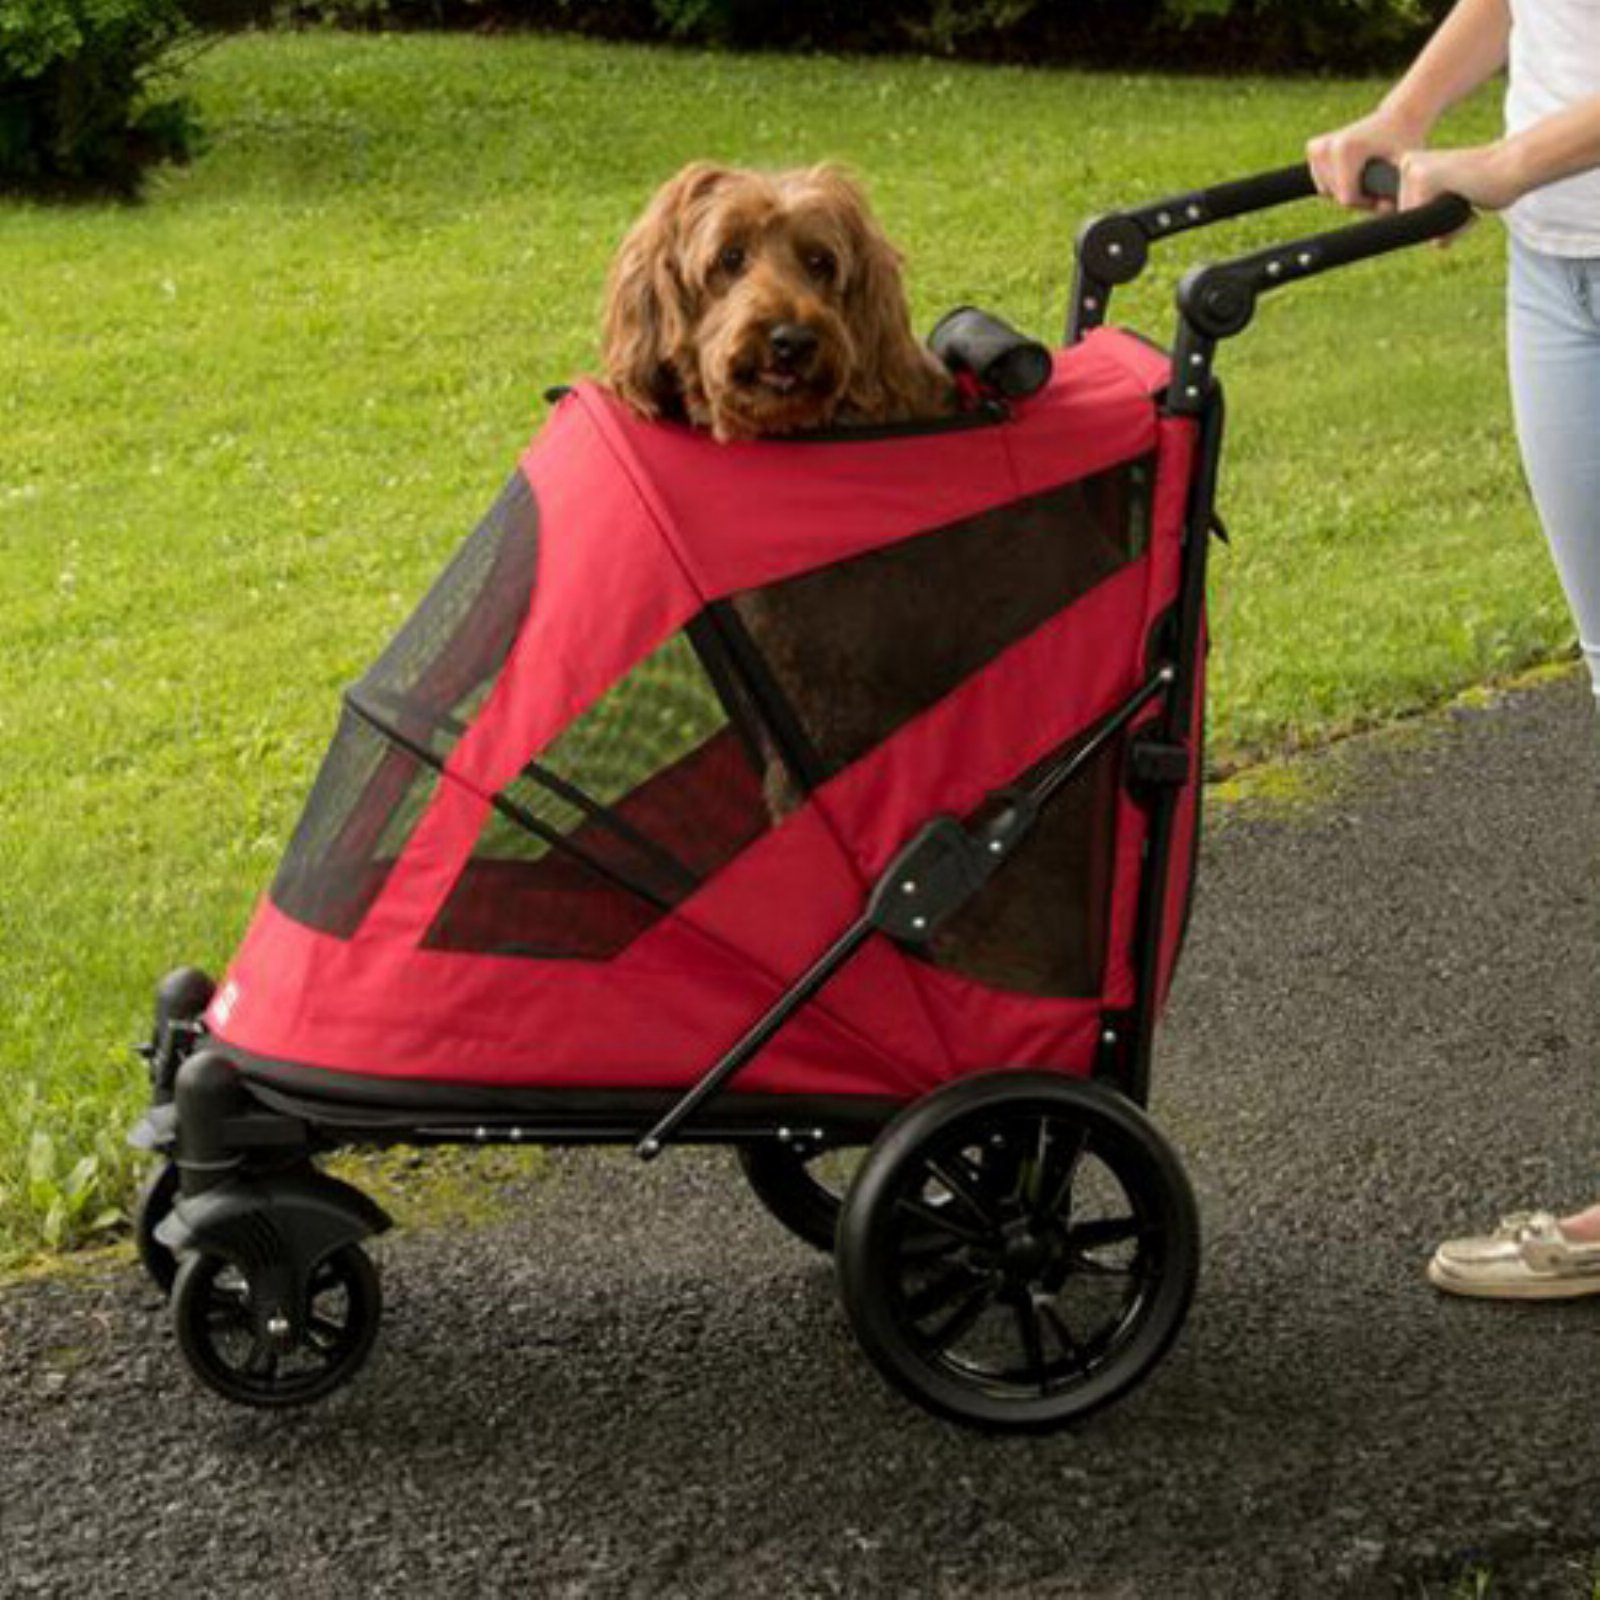 Pet Gear Excursion No-Zip Pet Stroller